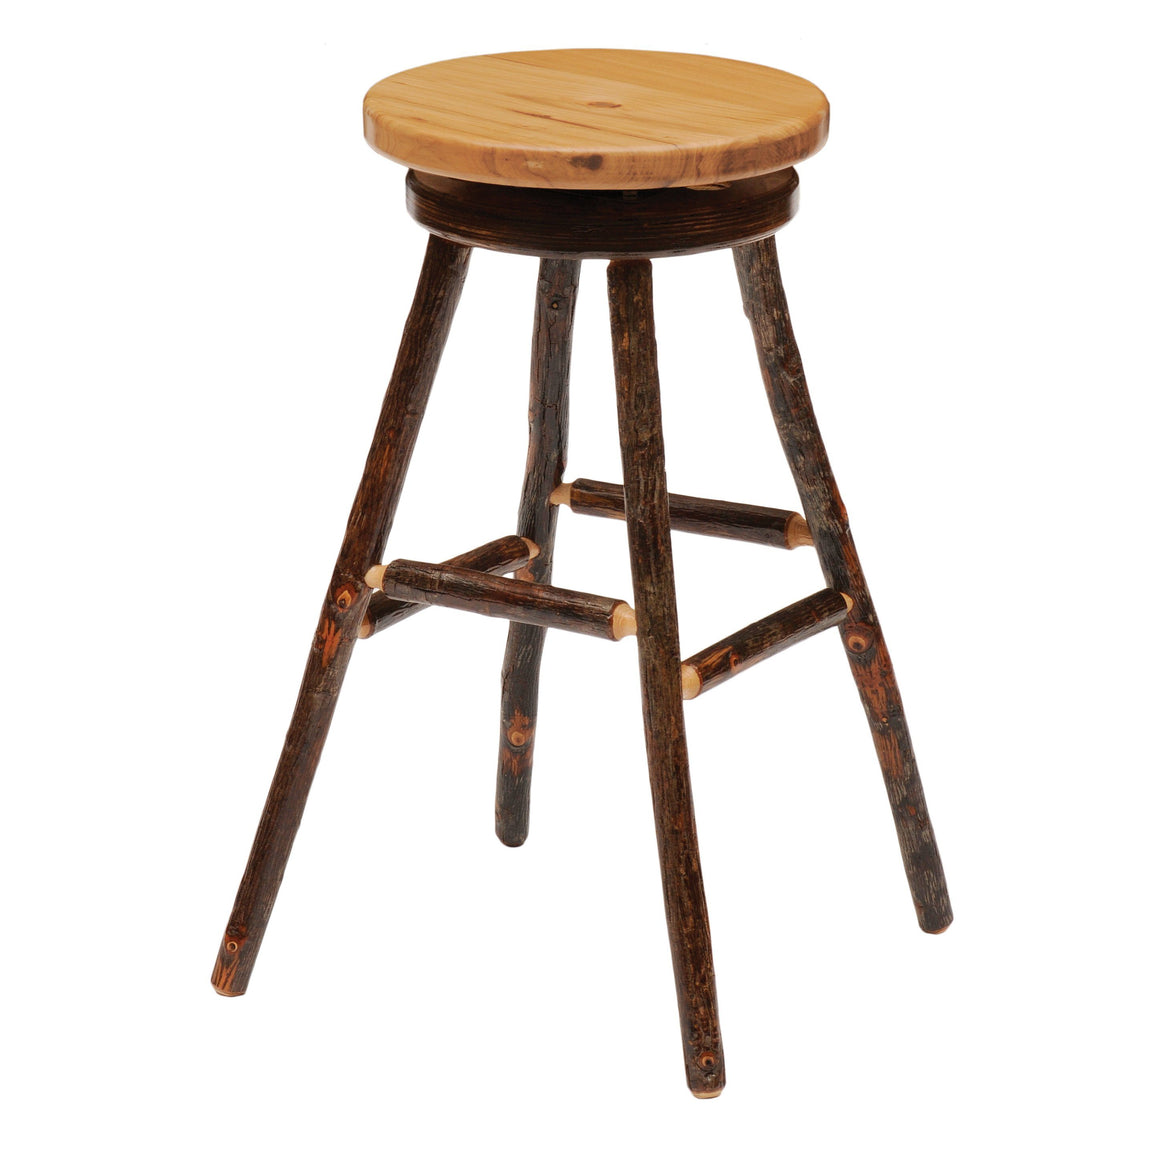 Natural Hickory Log Round Swivel Counter Stool - Wood Seat -24-Inch - Rustic Deco Incorporated